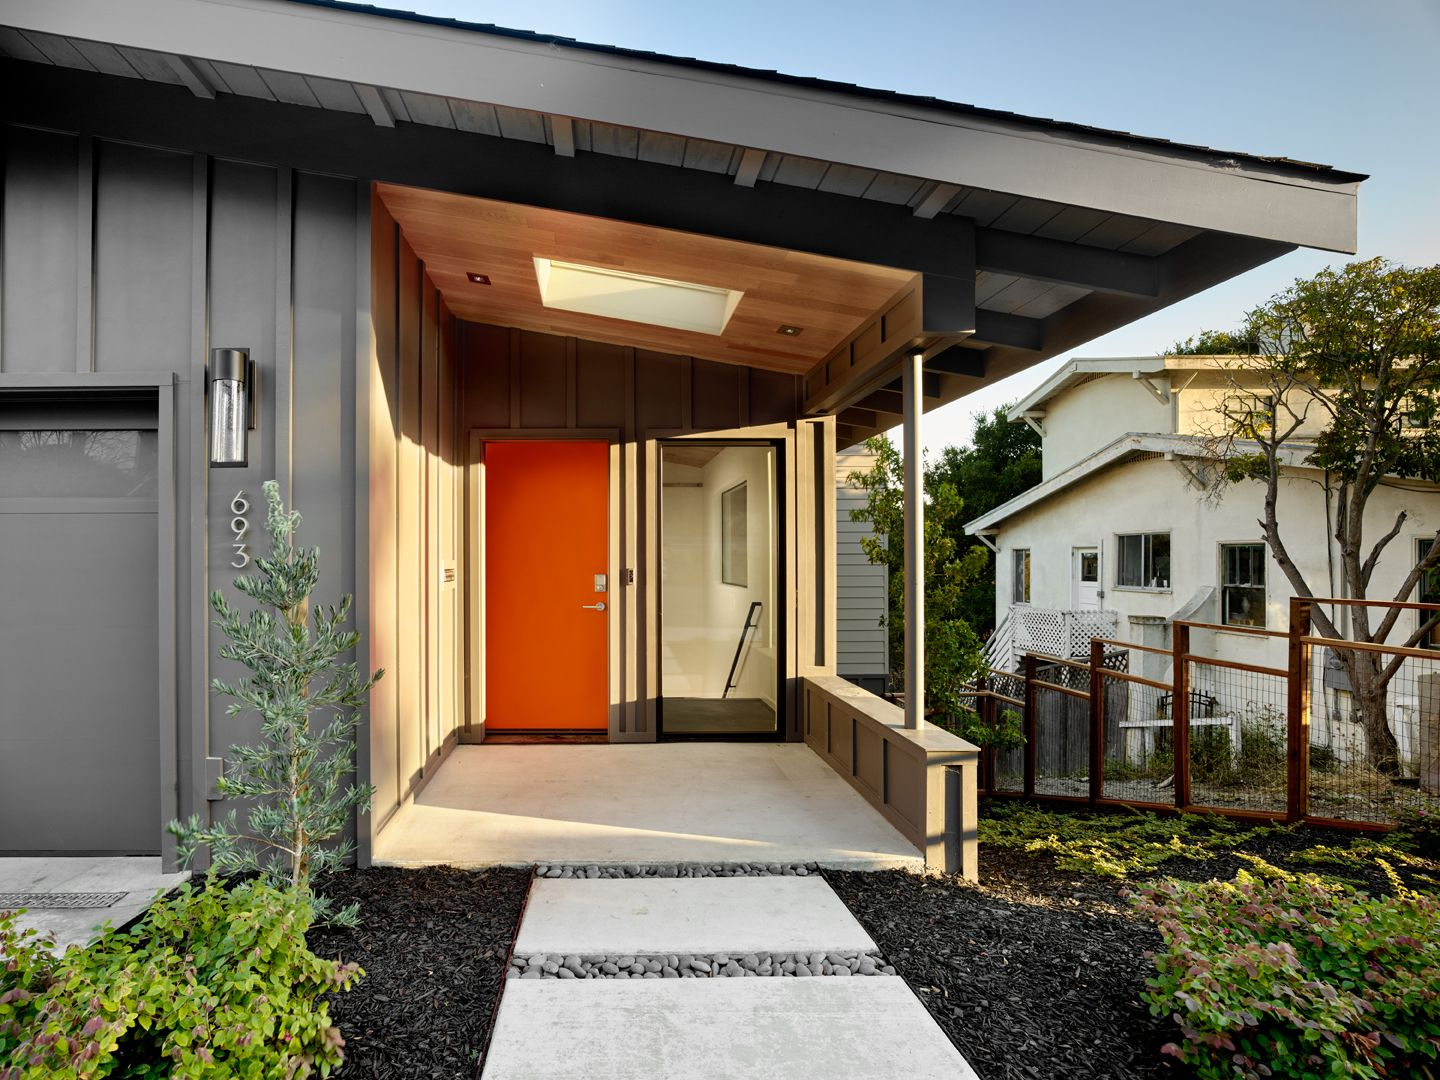 trestle glen modern by knock architecture design in 2020 on modern house designs siding that look amazing id=73992